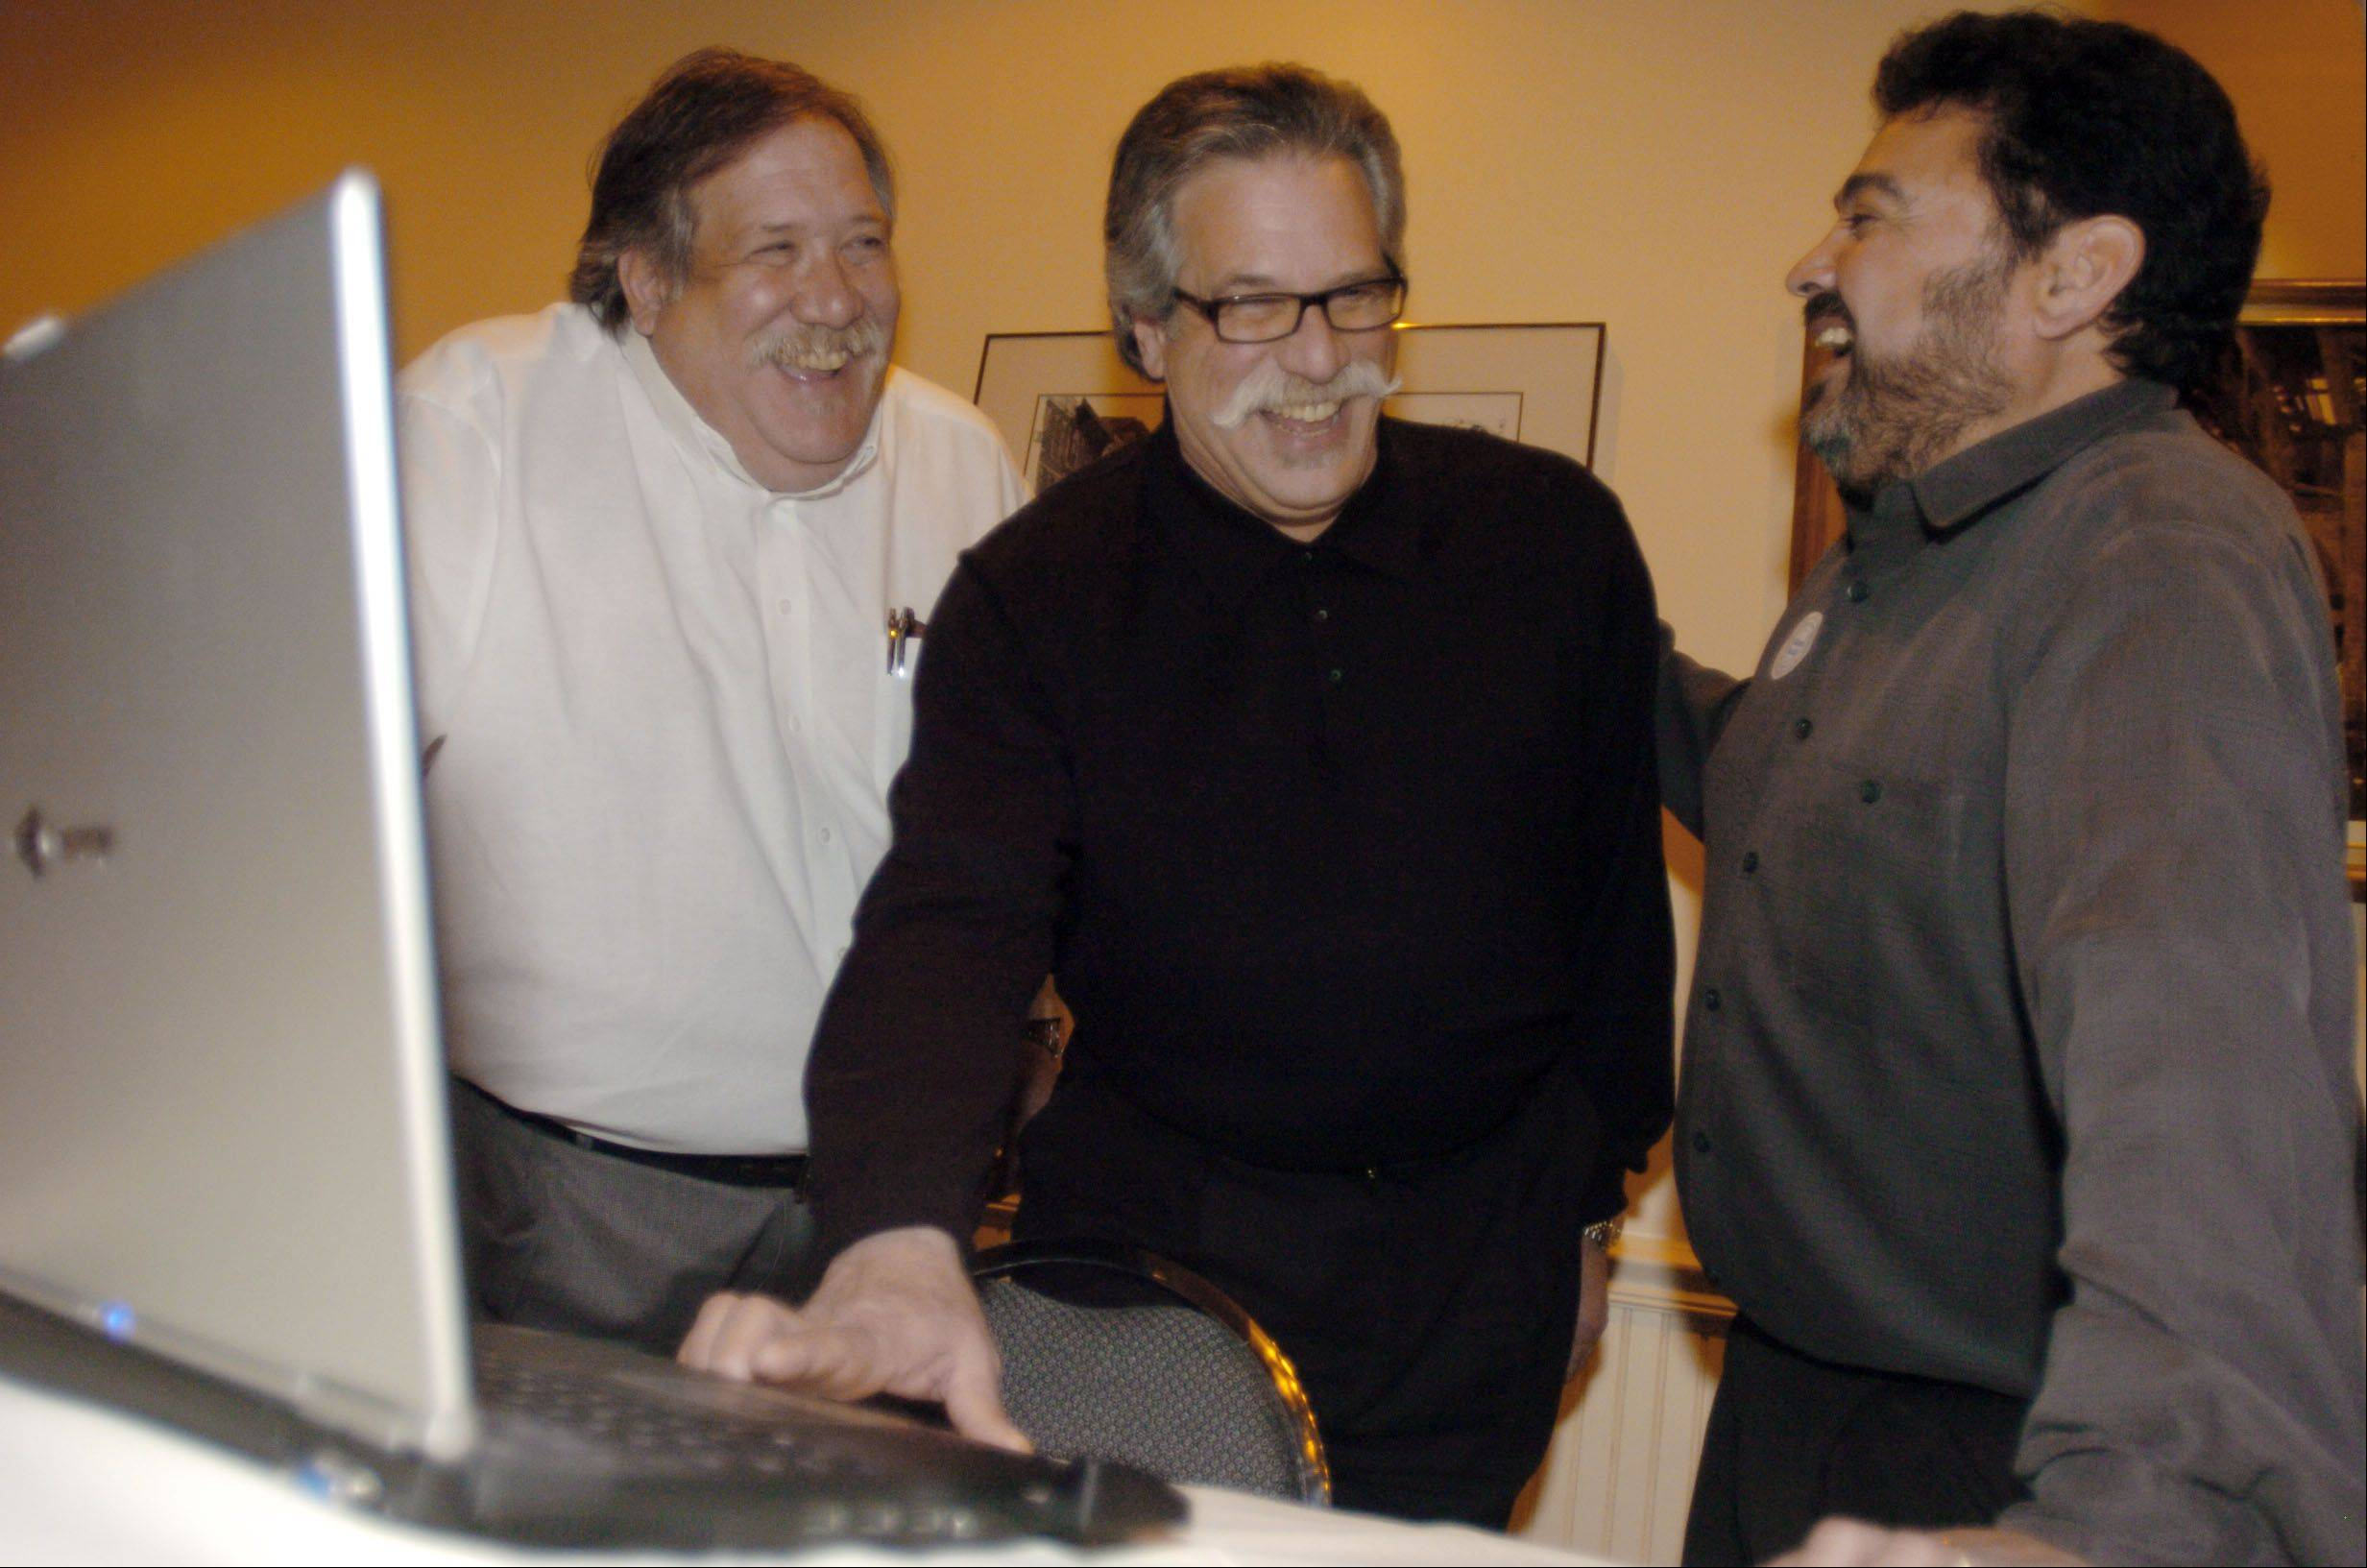 Then-West Chicago mayoral candidate Mike Kwasman, center, was all smiles after winning election in 2007. He was joined by Steve Kwasman, left, and Alderman Ruben Pineda.